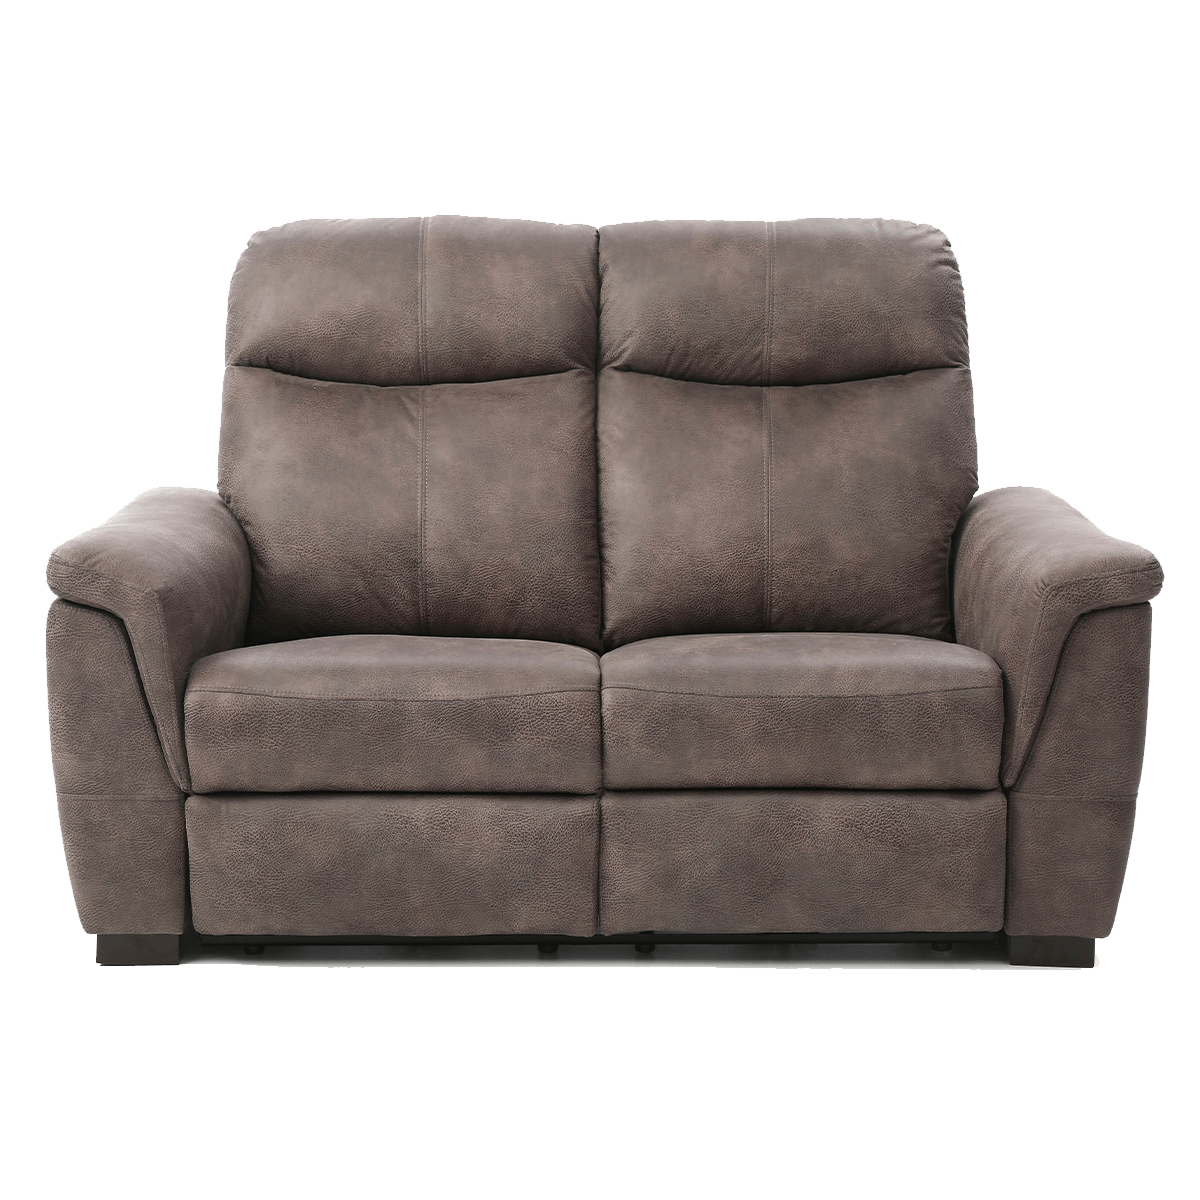 Loveseat Verona